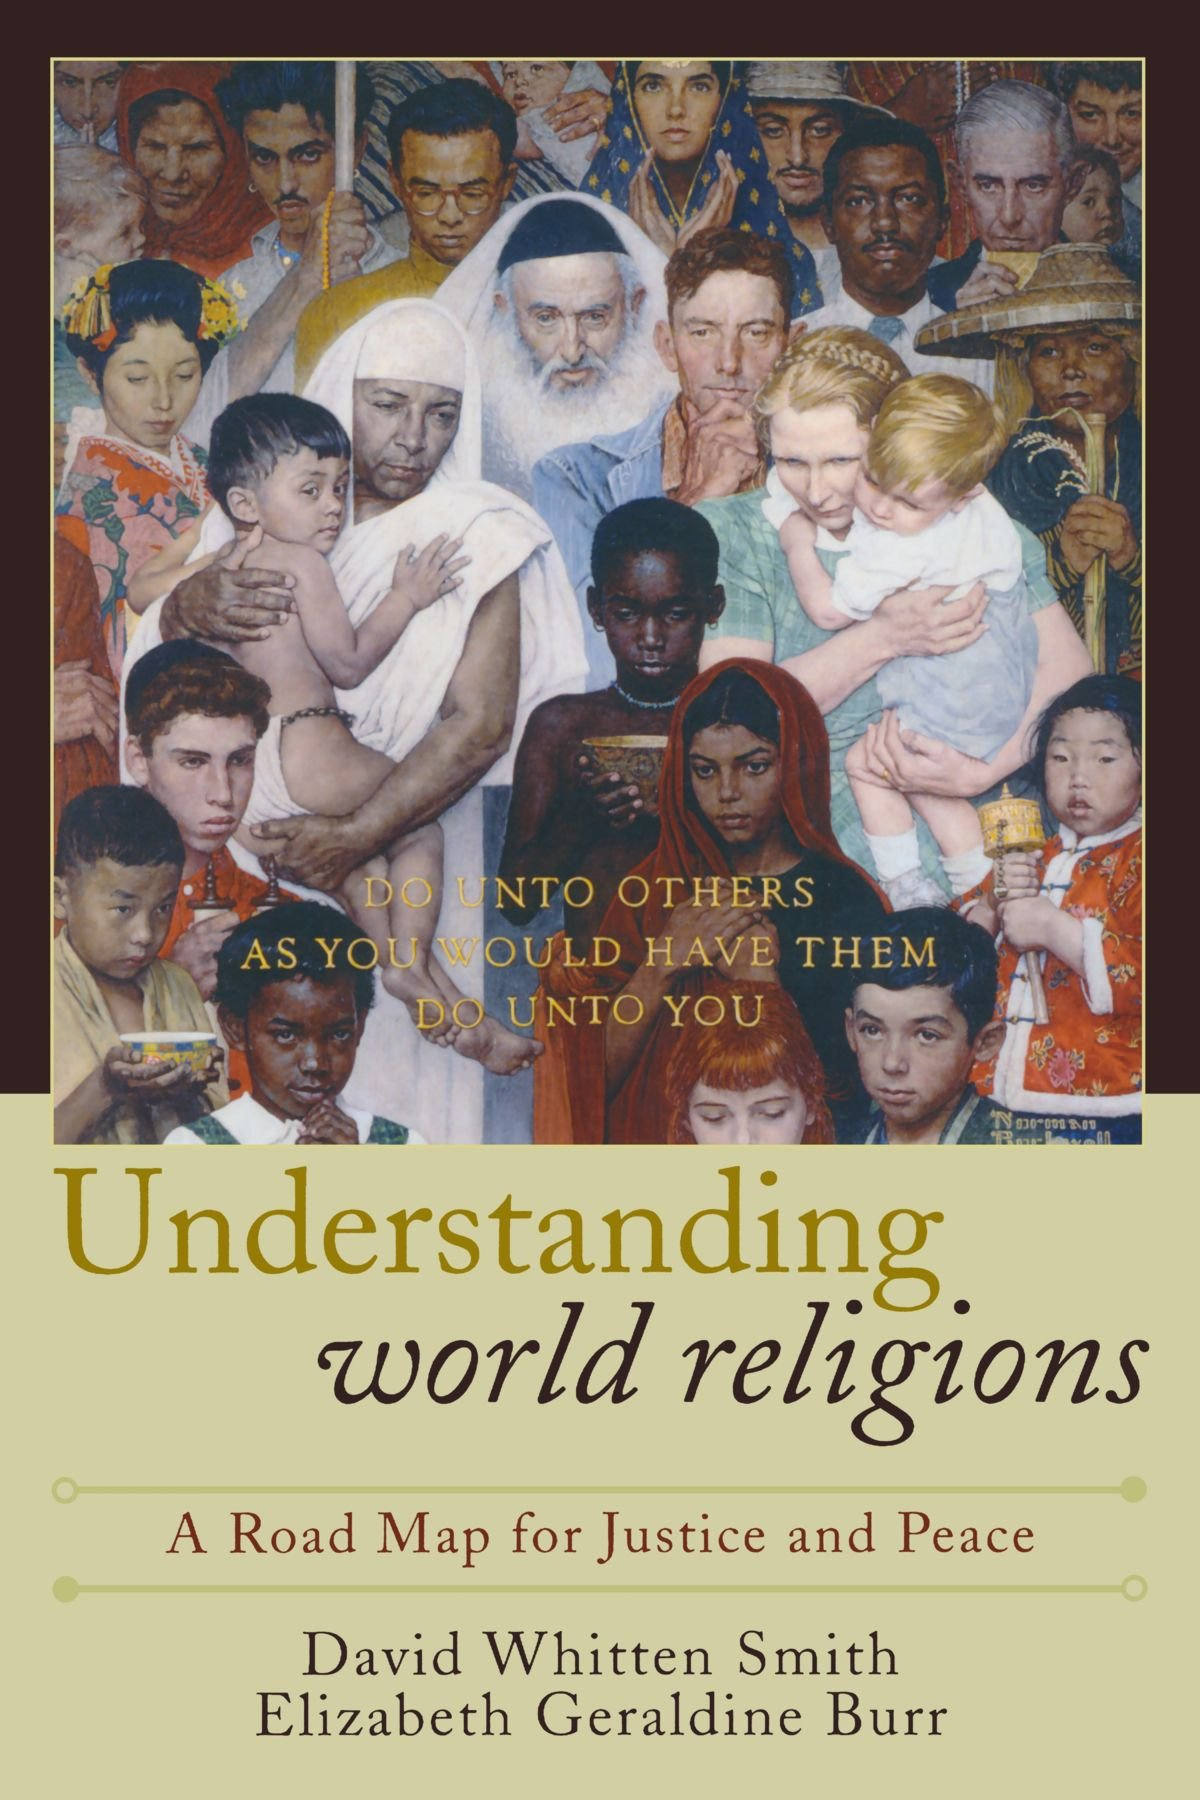 Understanding World Religions: A Road Map for Justice and Peace:  Amazon.co.uk: David Whitten Smith, Elizabeth Geraldine Burr: 9780742550551:  Books